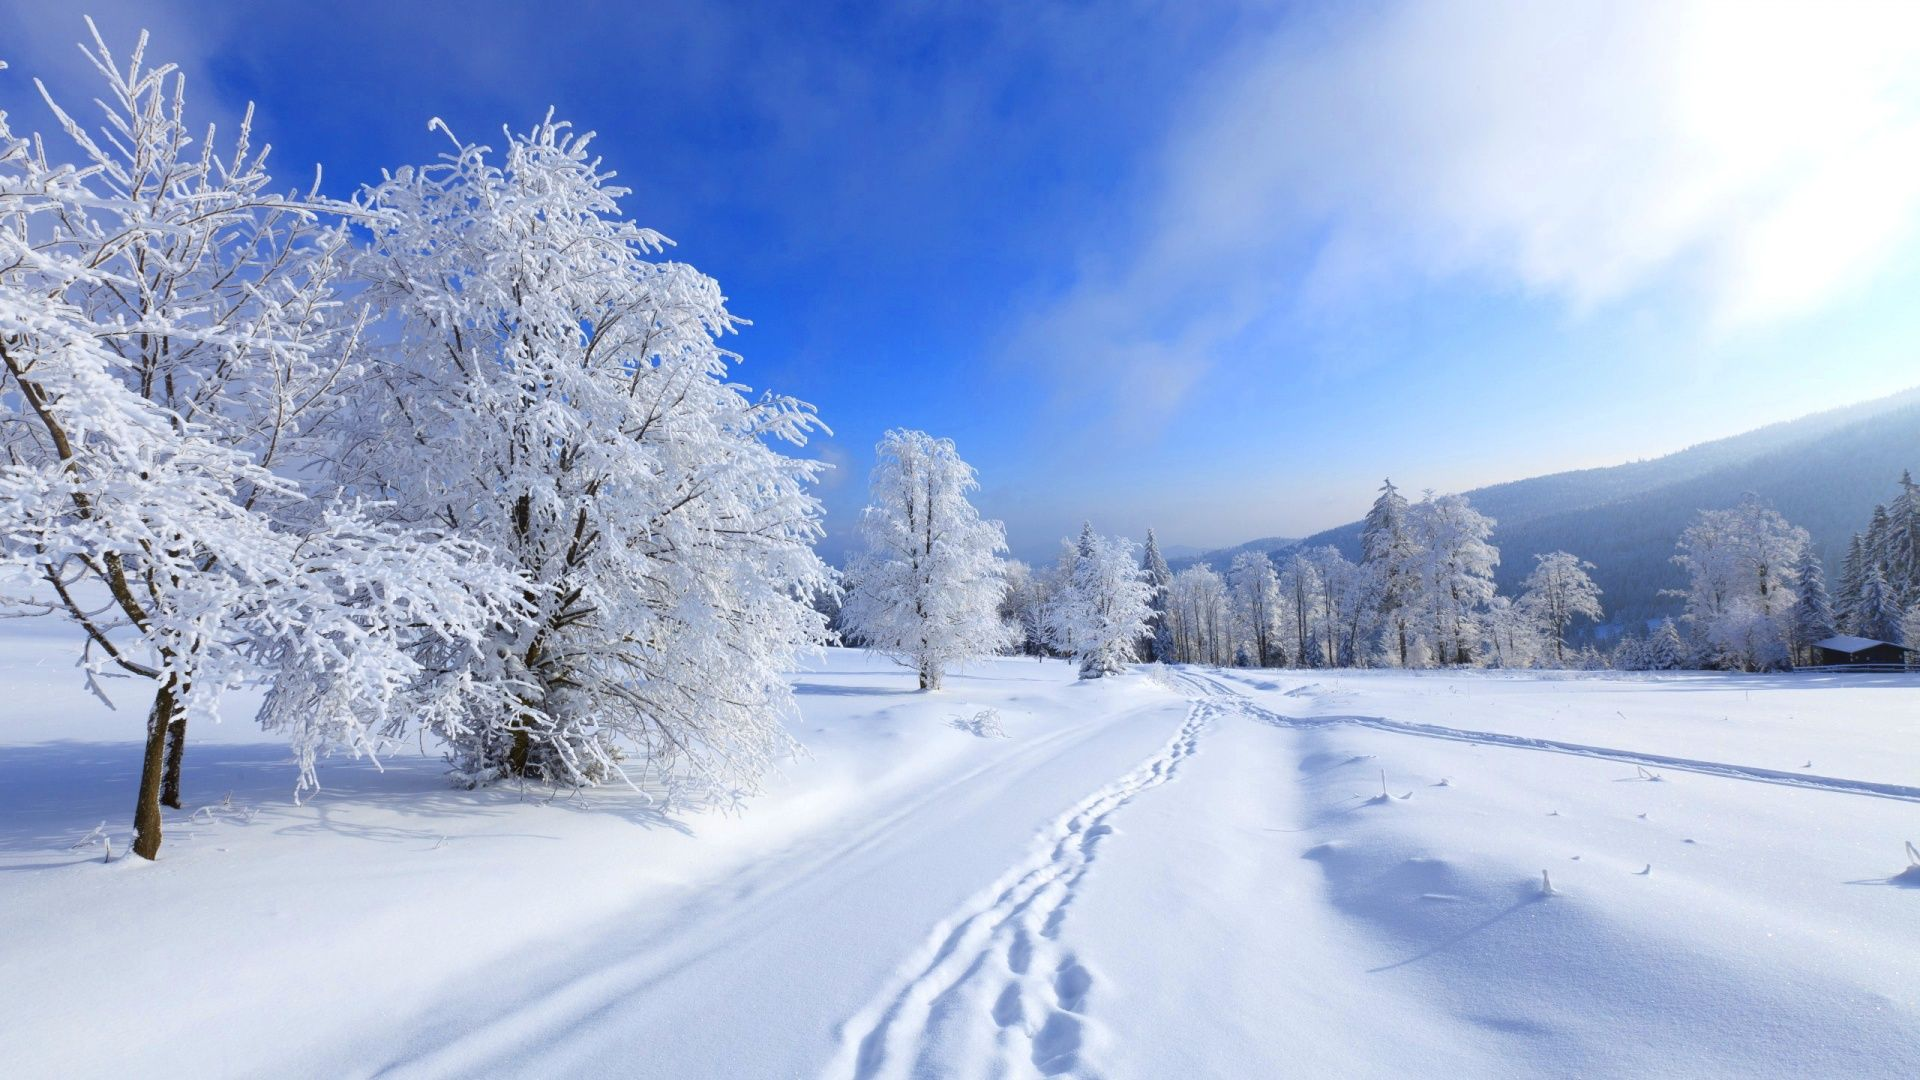 Free Winter Wallpapers For Desktop High Quality HQ Definition